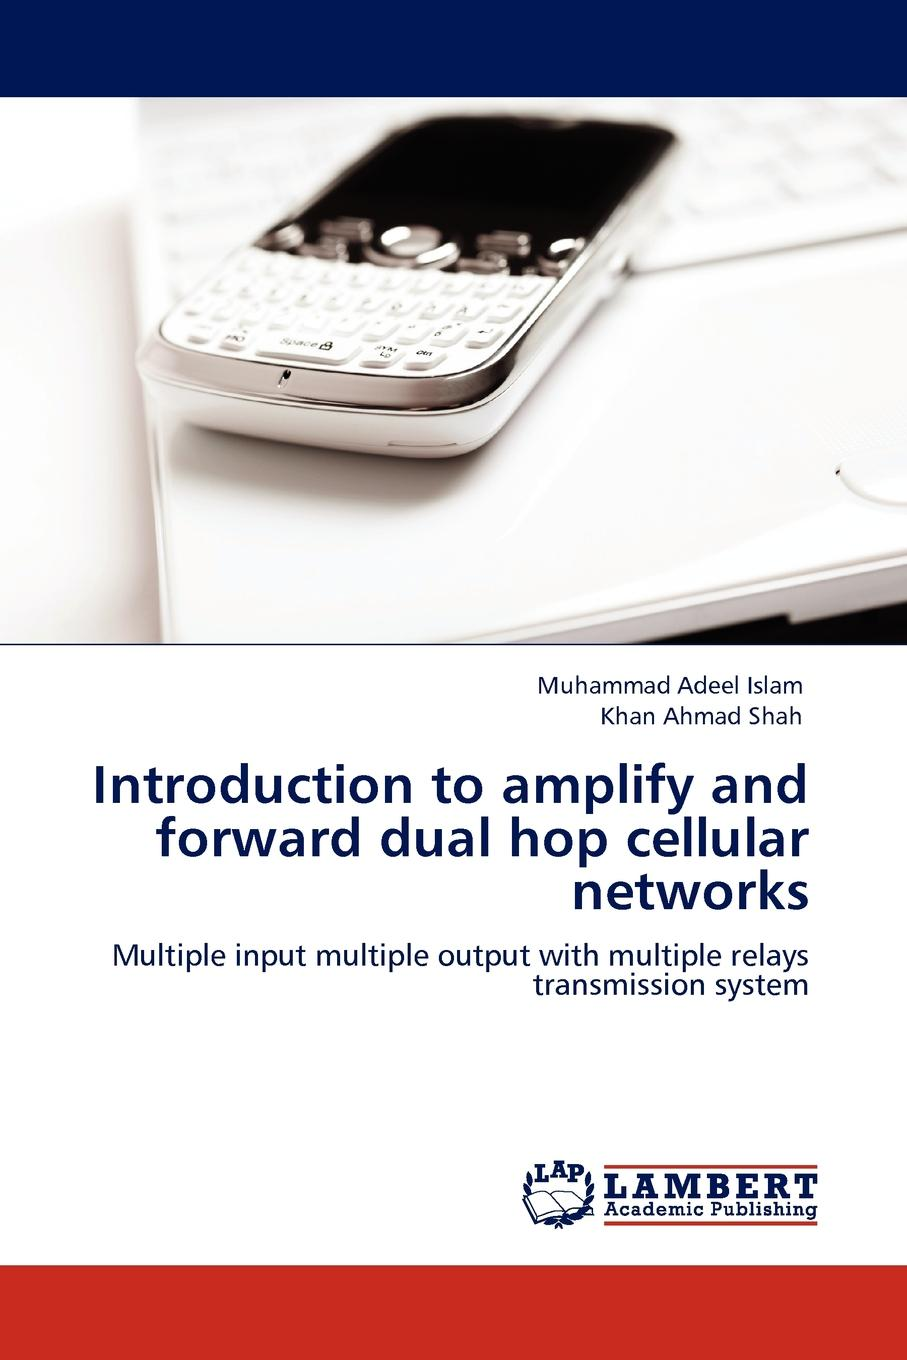 Muhammad Adeel Islam, Khan Ahmad Shah Introduction to Amplify and Forward Dual Hop Cellular Networks diversity combining for digital signals in wireless fading channels